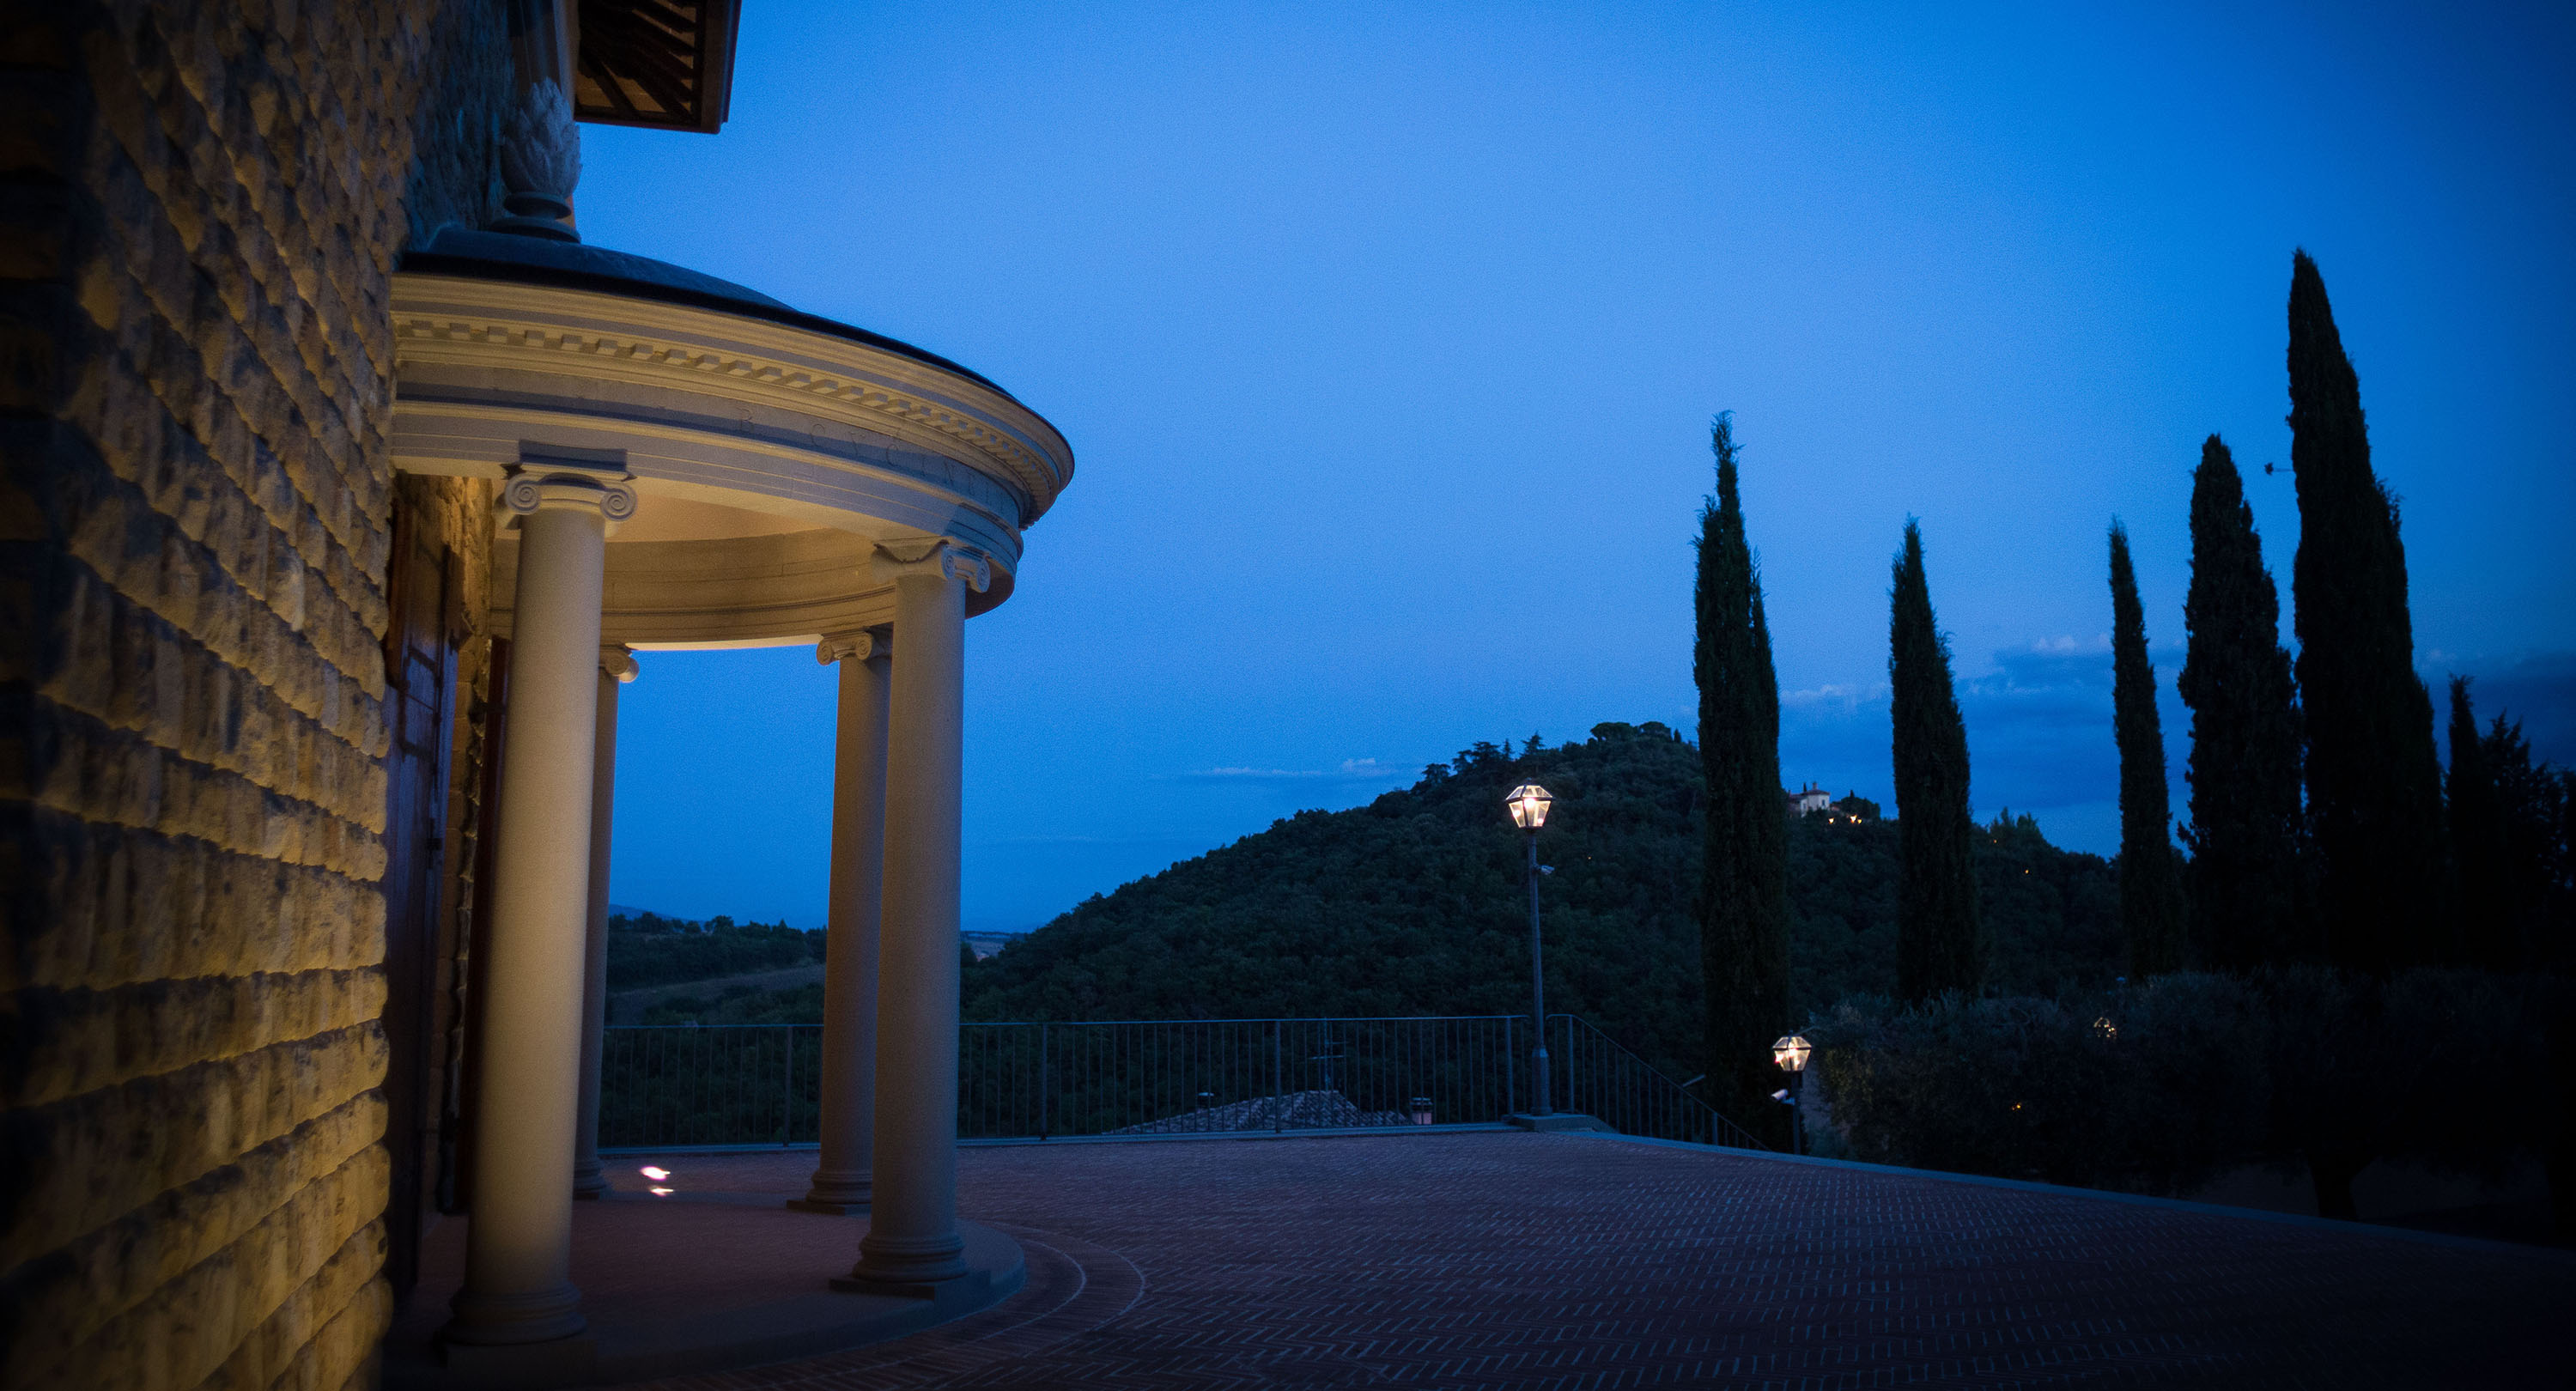 The Theatre Cucinelli at night time